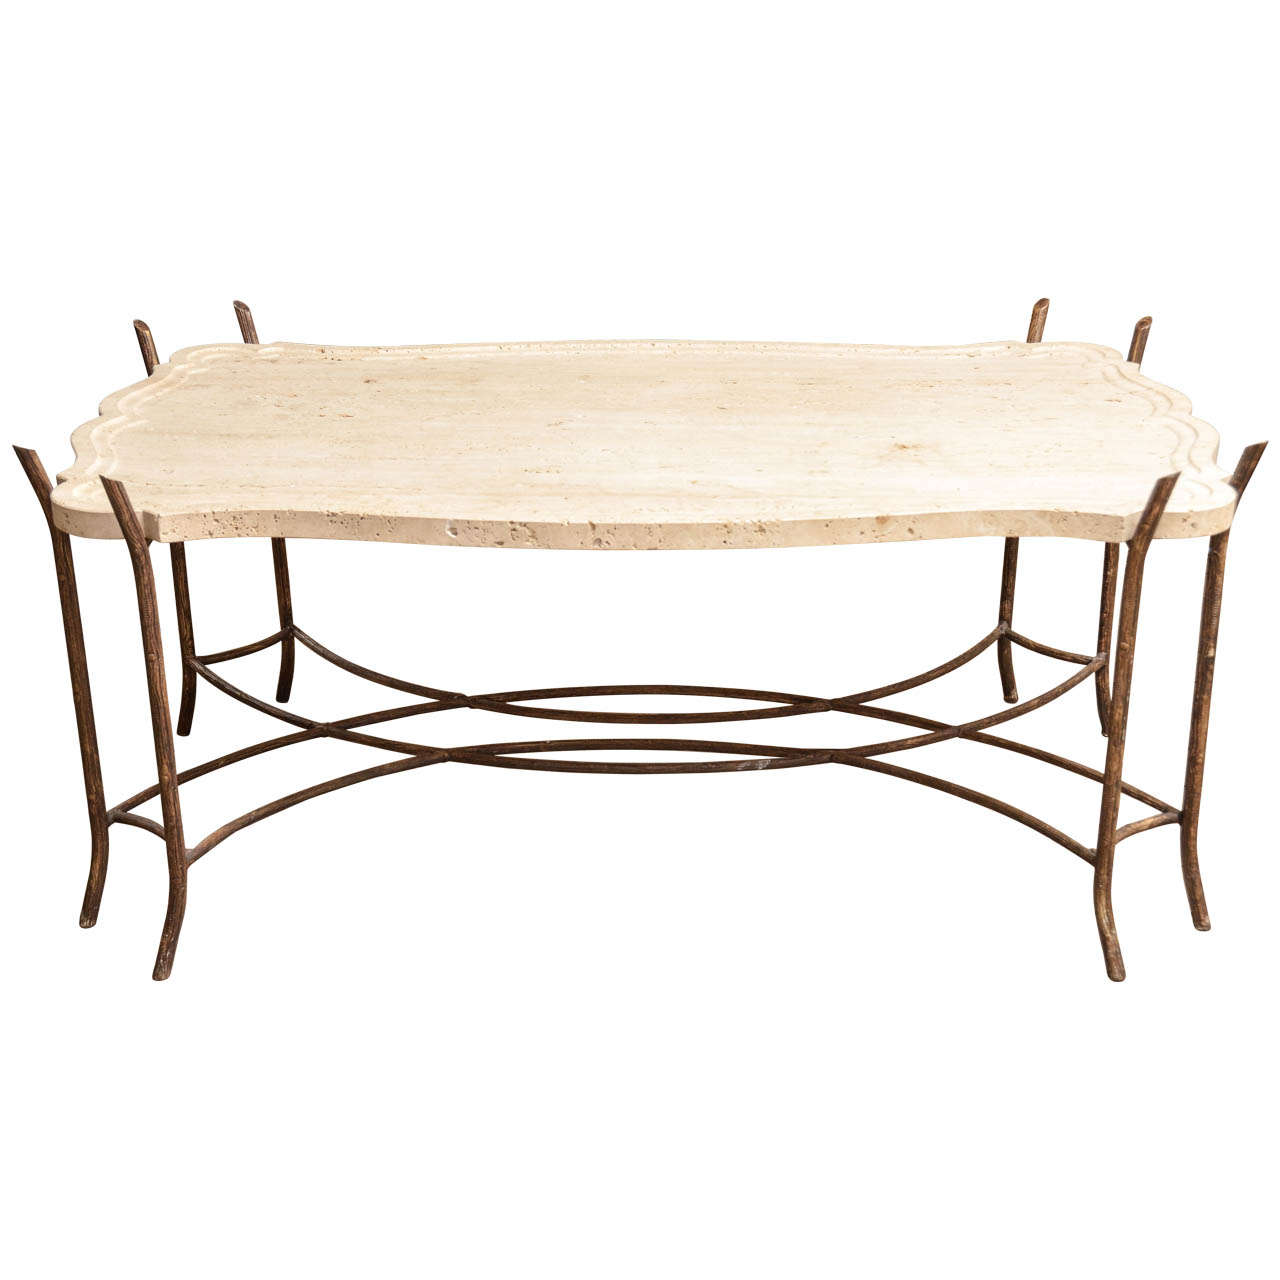 Iron Coffee Tables Faux Bois Iron Base Limestone Top Coffee Table With Scalloped Edge